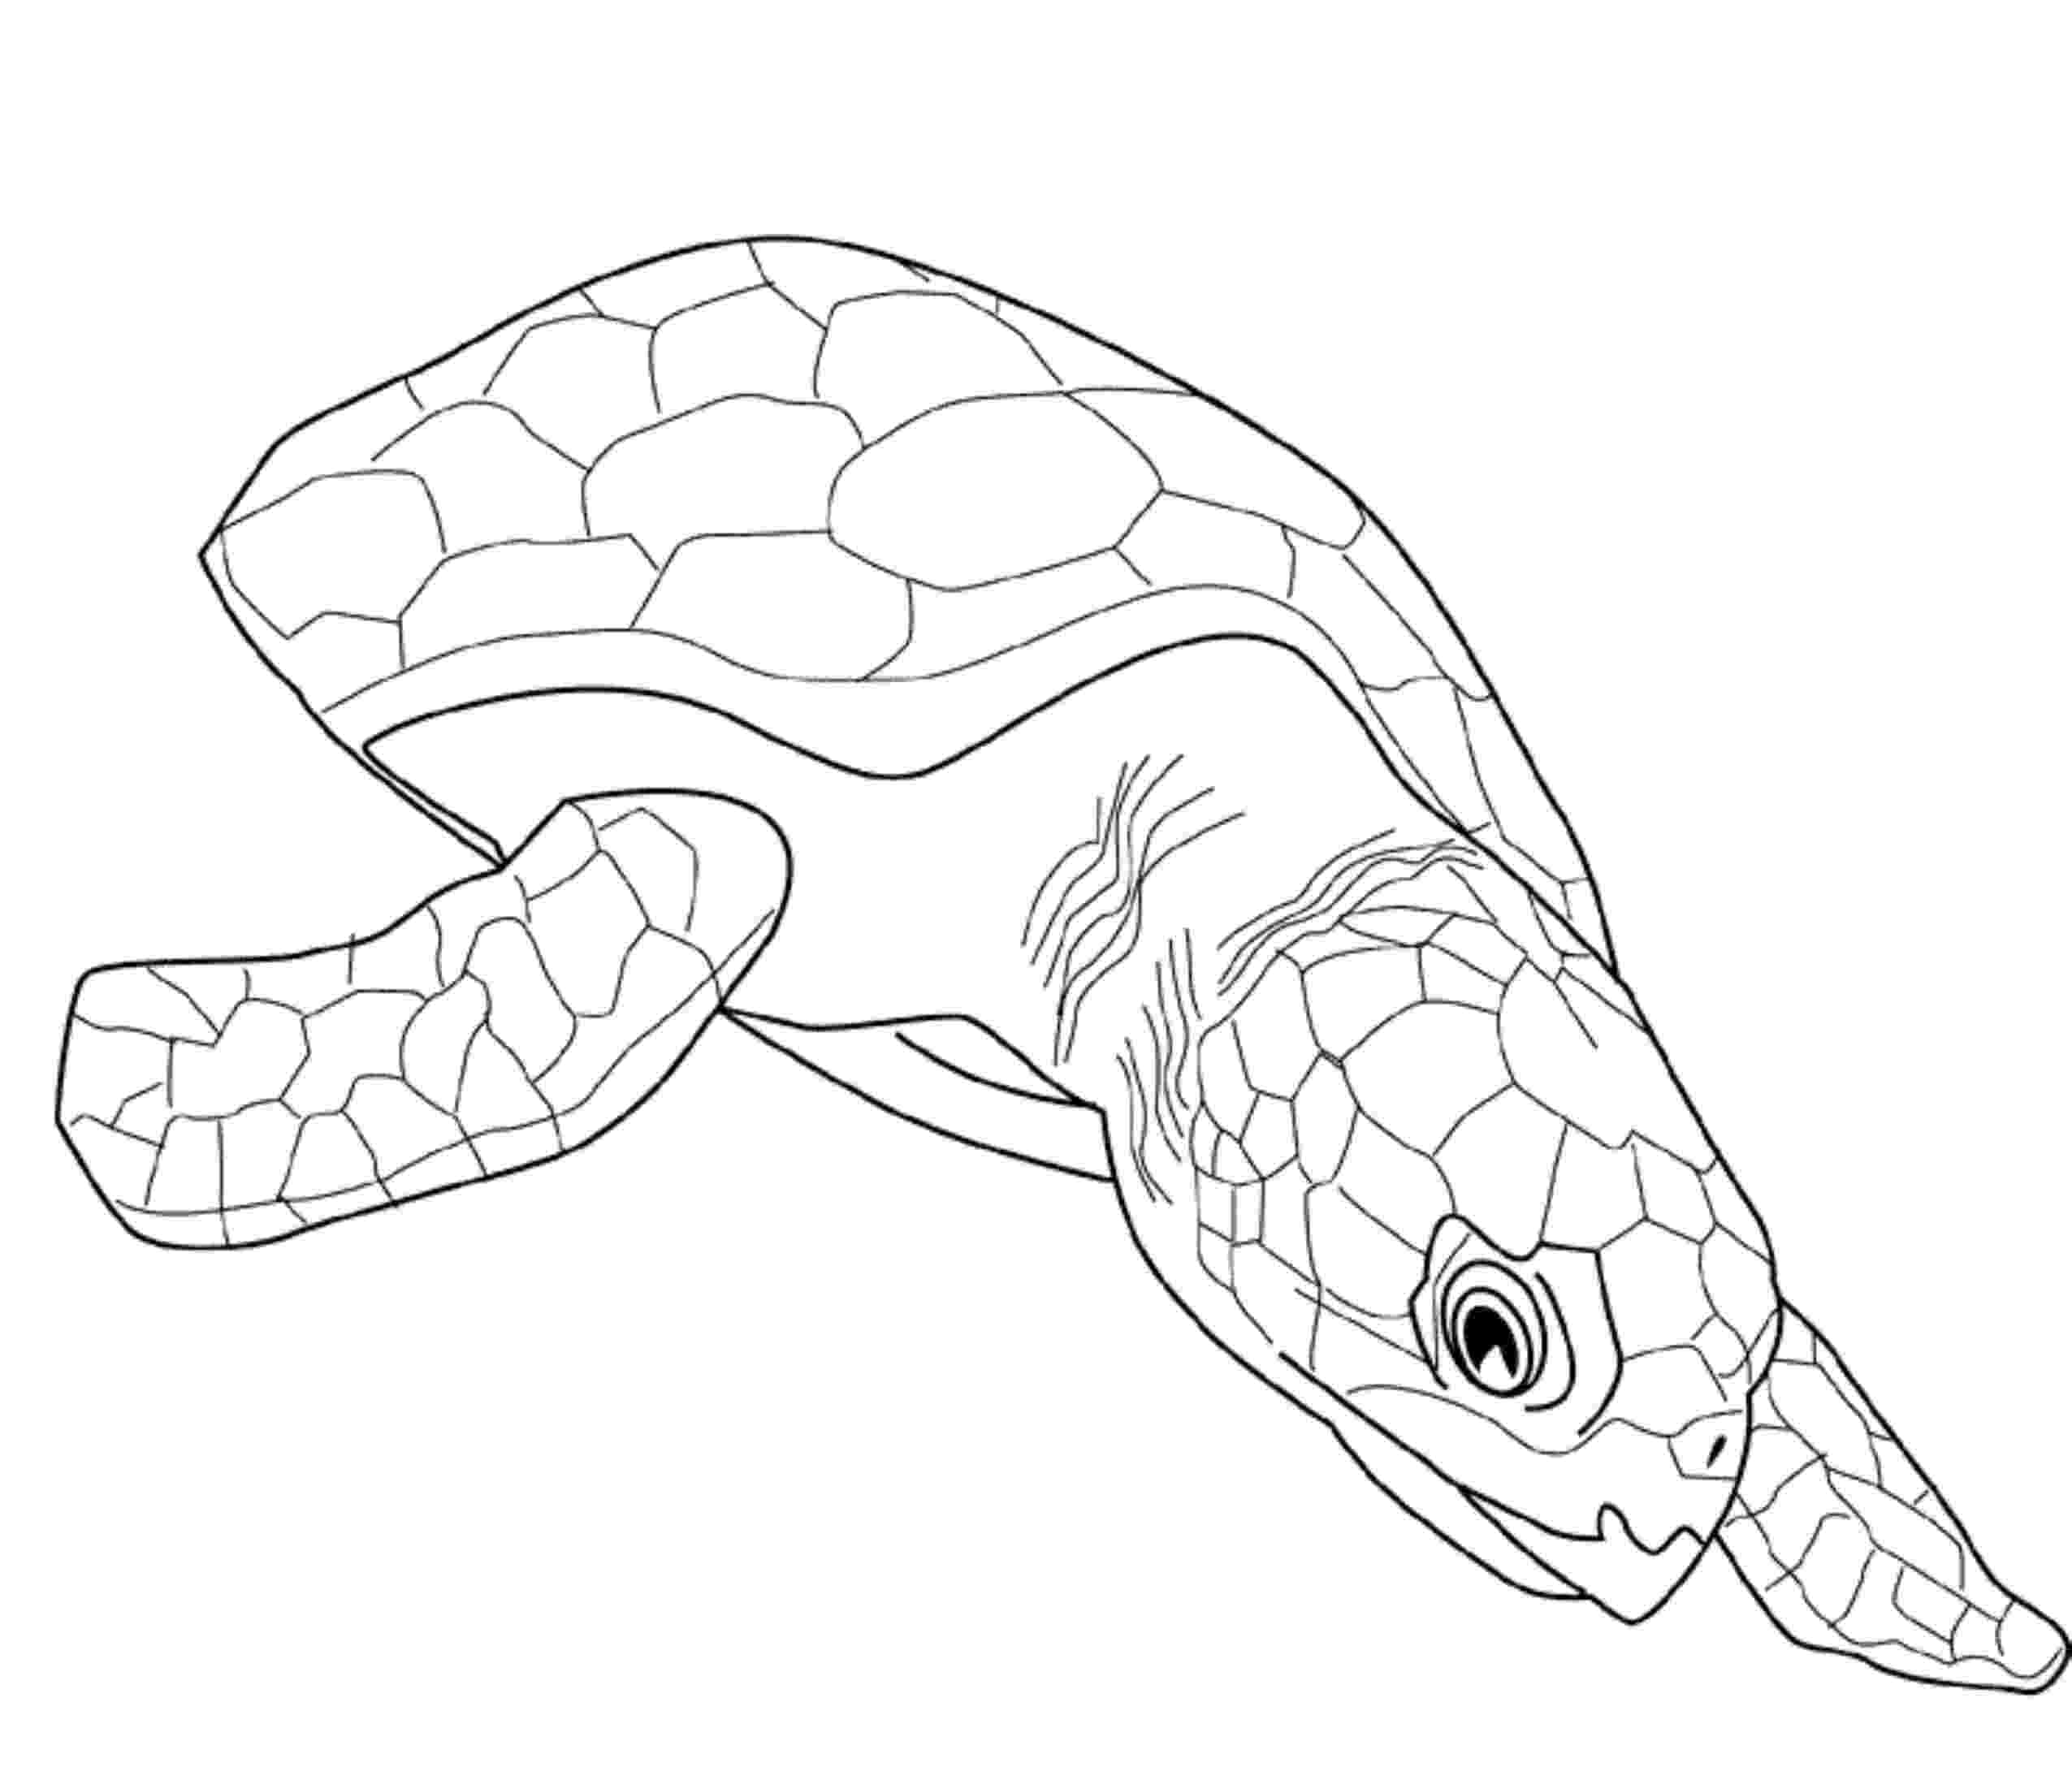 coloring pictures of turtles printable sea turtle coloring pages for kids cool2bkids turtles of pictures coloring